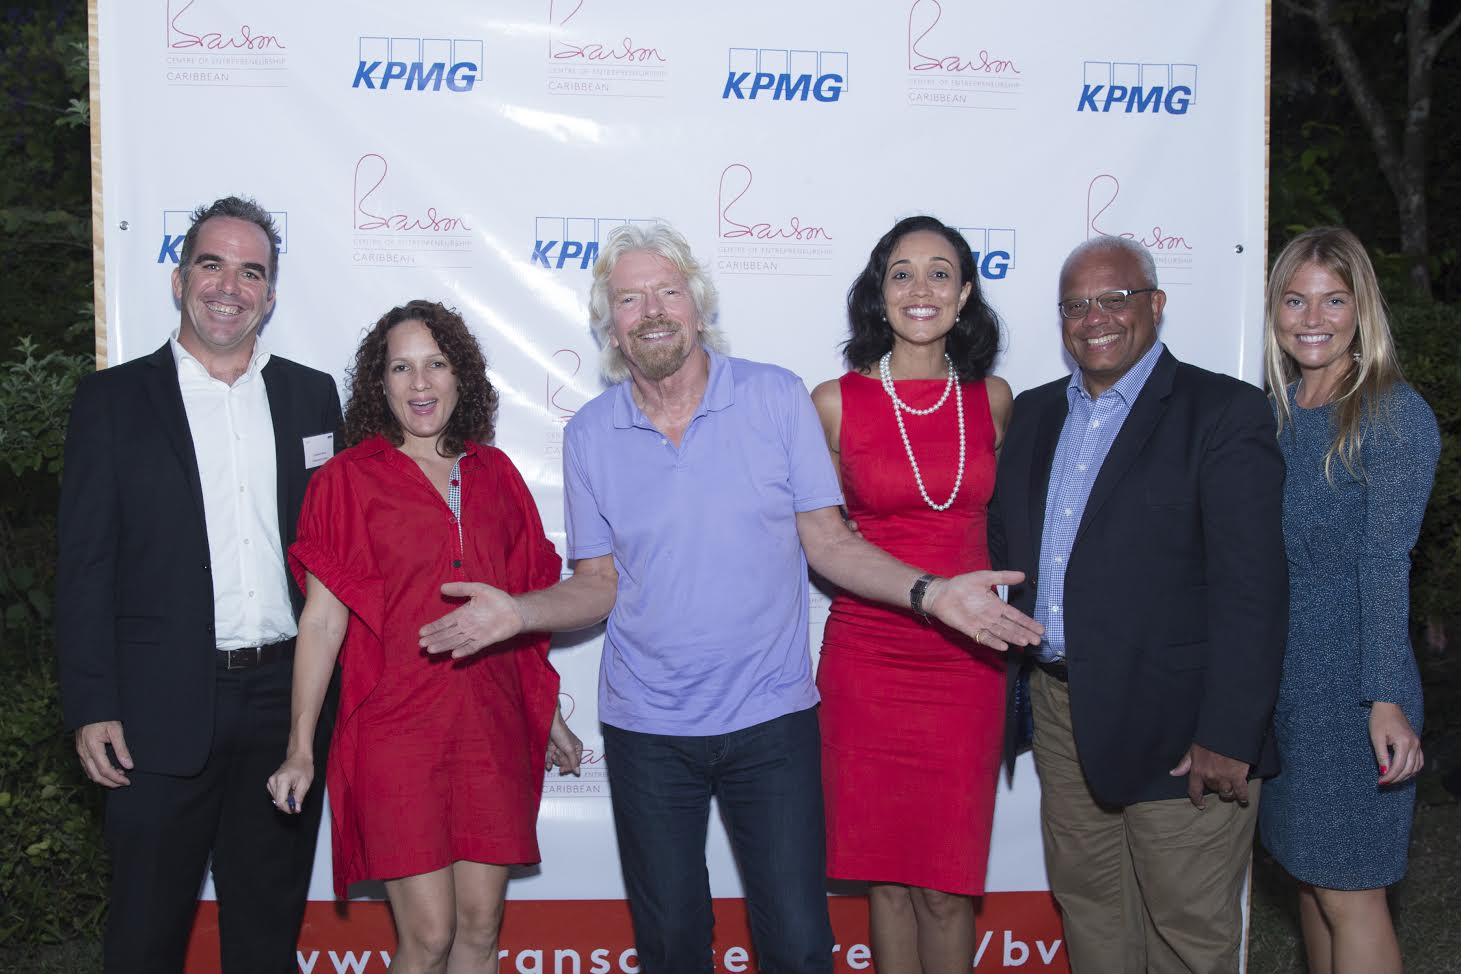 On March 1, 2016, Richard Branson launched the Branson Centre of Entrepreneurship in the BVI. The Centre provides invaluable training and support to its entrepreneurs.